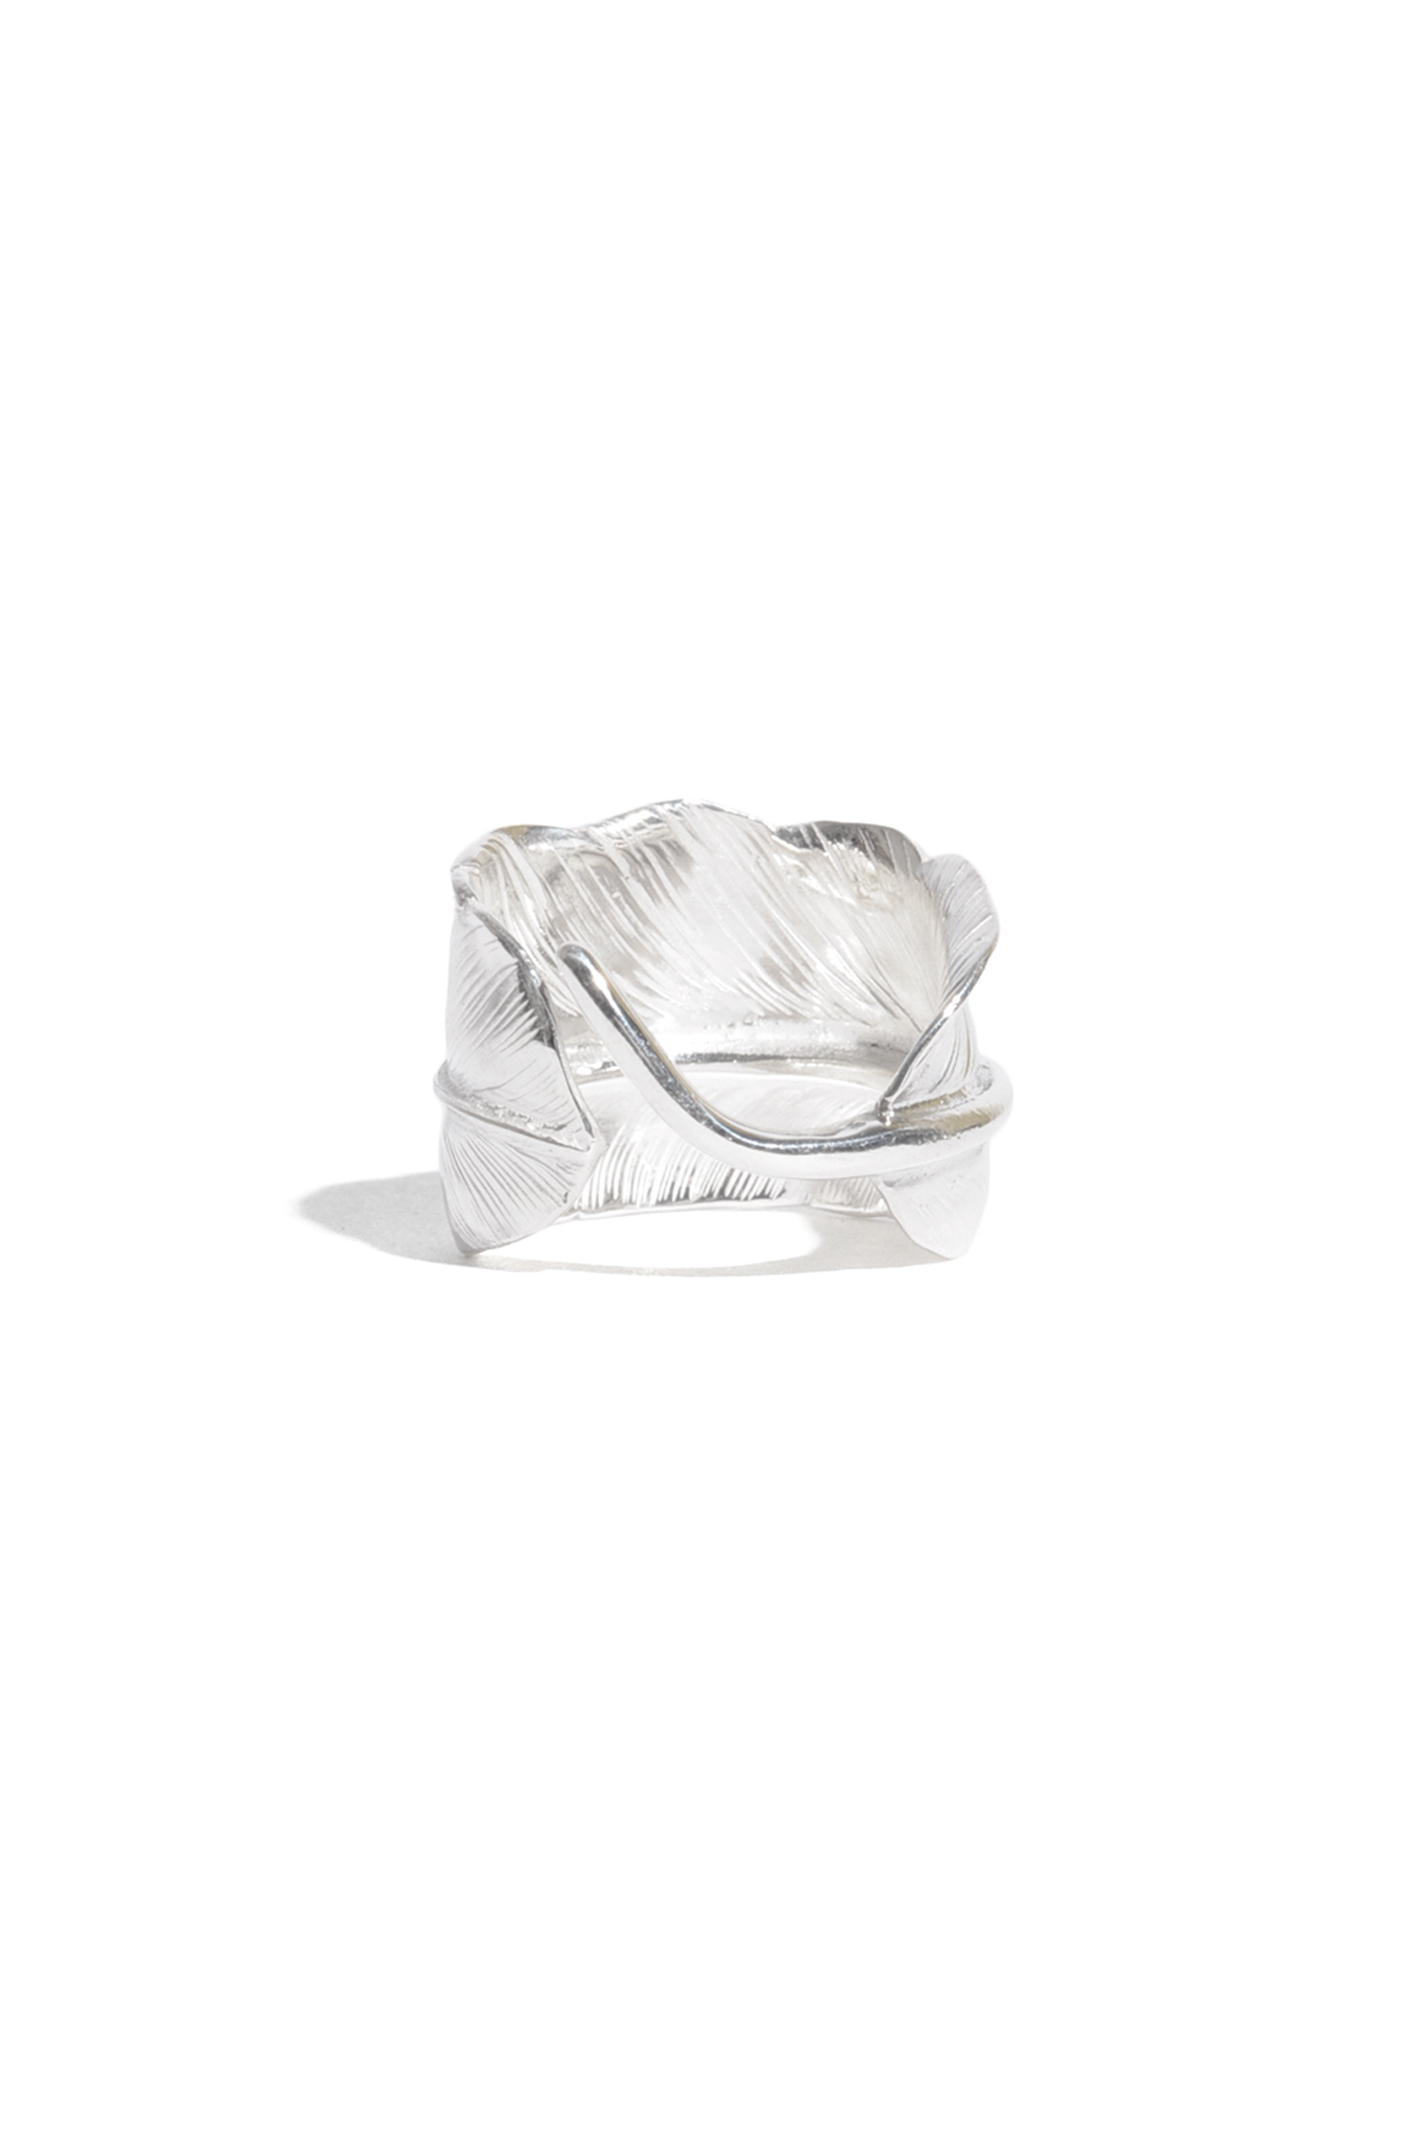 画像4: 【LARRY SMITH】 PLAIN FEATHER RING